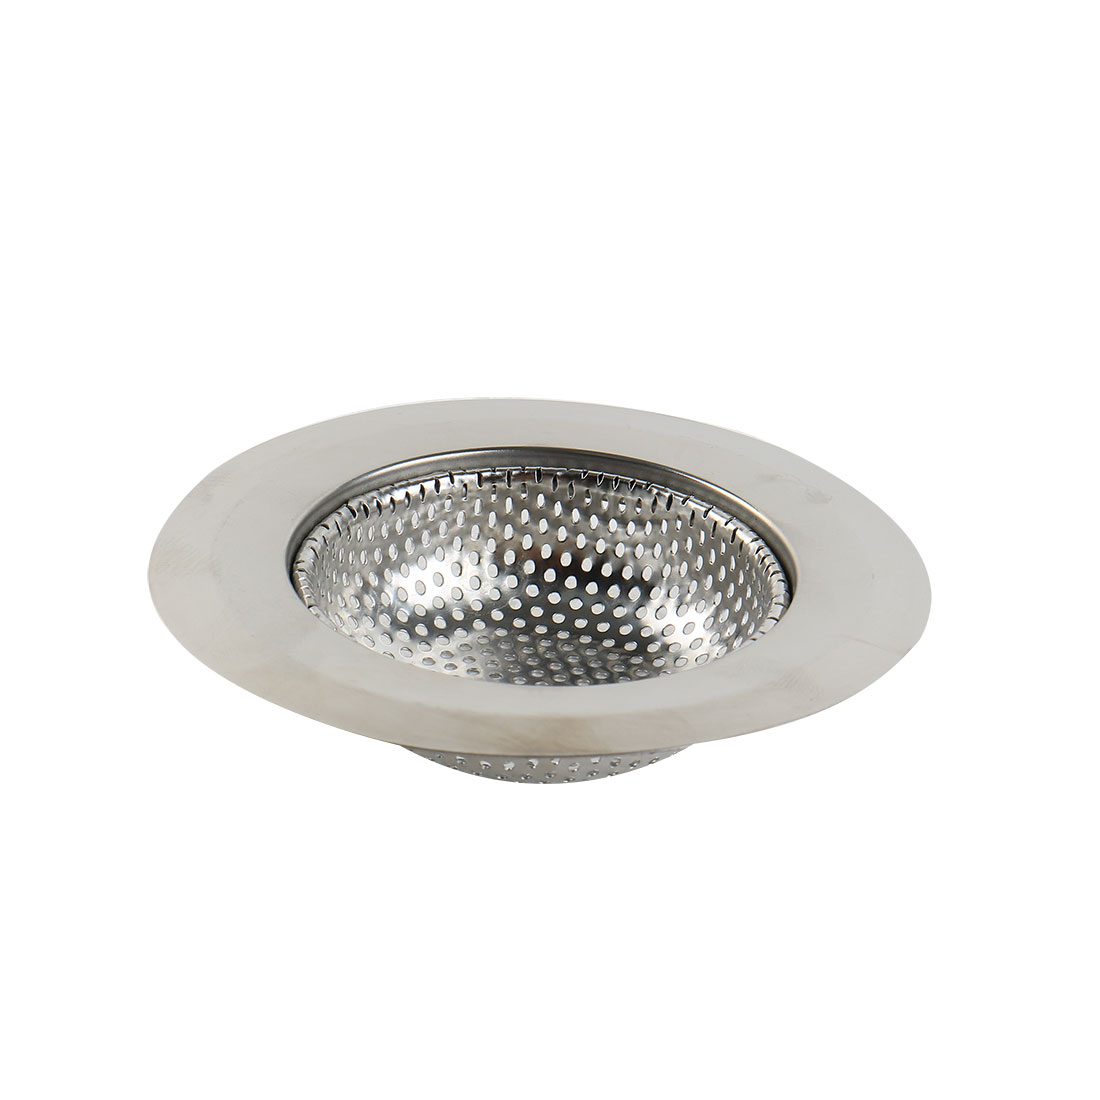 Home Kitchen Stainless Steel Sink Strainer Drain Stopper Basket 11cm Diameter